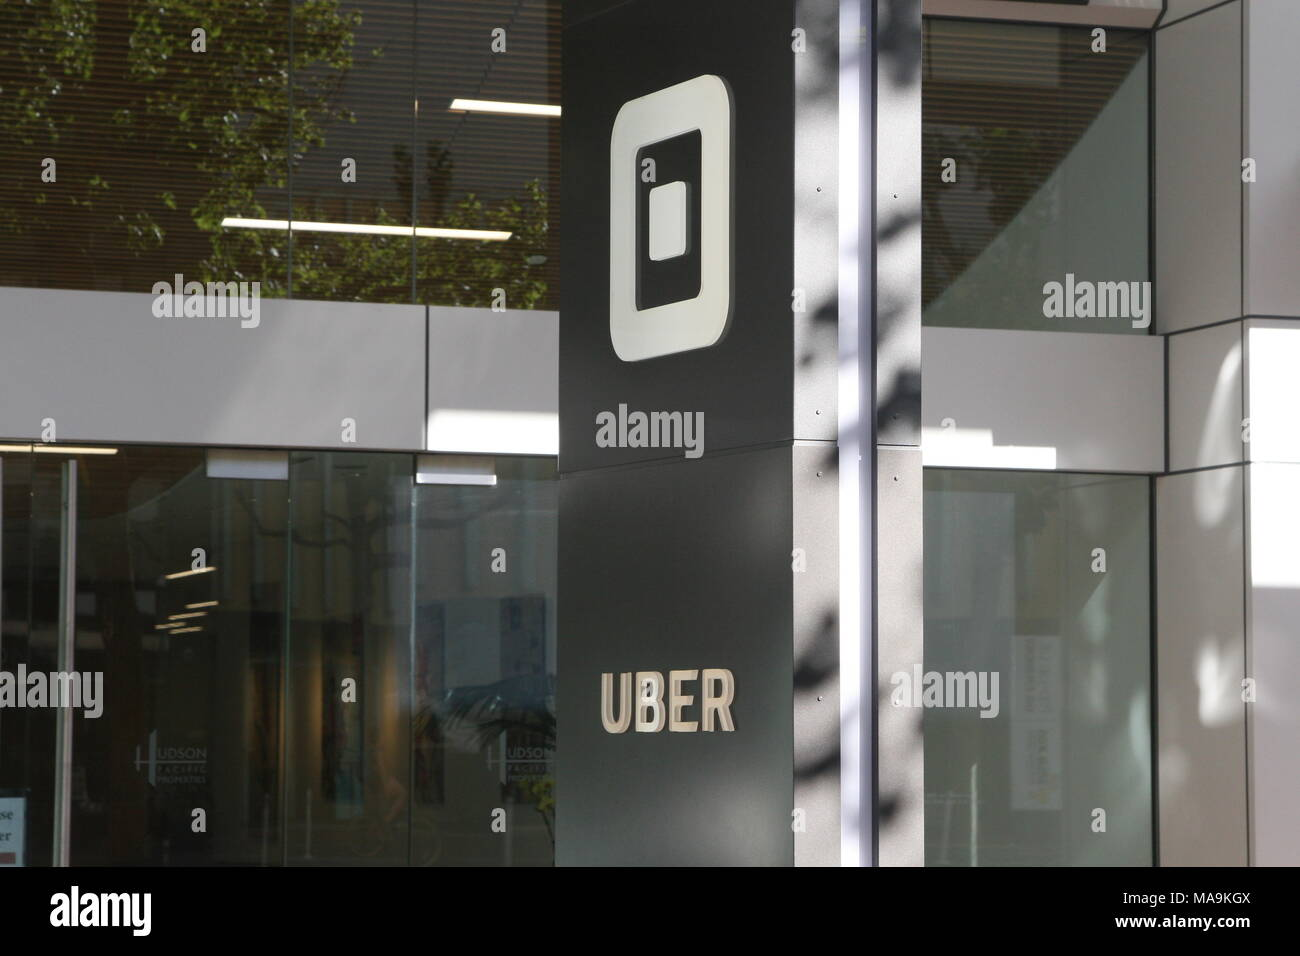 San Francisco, California, USA. 30th Mar, 2018. The worldwide headquarters of Uber Technologies Inc., located on Market Street in San Francisco, California. The family of a Elaine Herzberg, 49, killed in Arizona by an Uber autonomous vehicle has reached a settlement with the ride services company, ending a developing legal battle over the first fatality caused by a self-driving vehicle. The image shows signs, logos, and buildings on the Uber campus. Credit: Scott Carson/ZUMA Wire/Alamy Live News - Stock Image